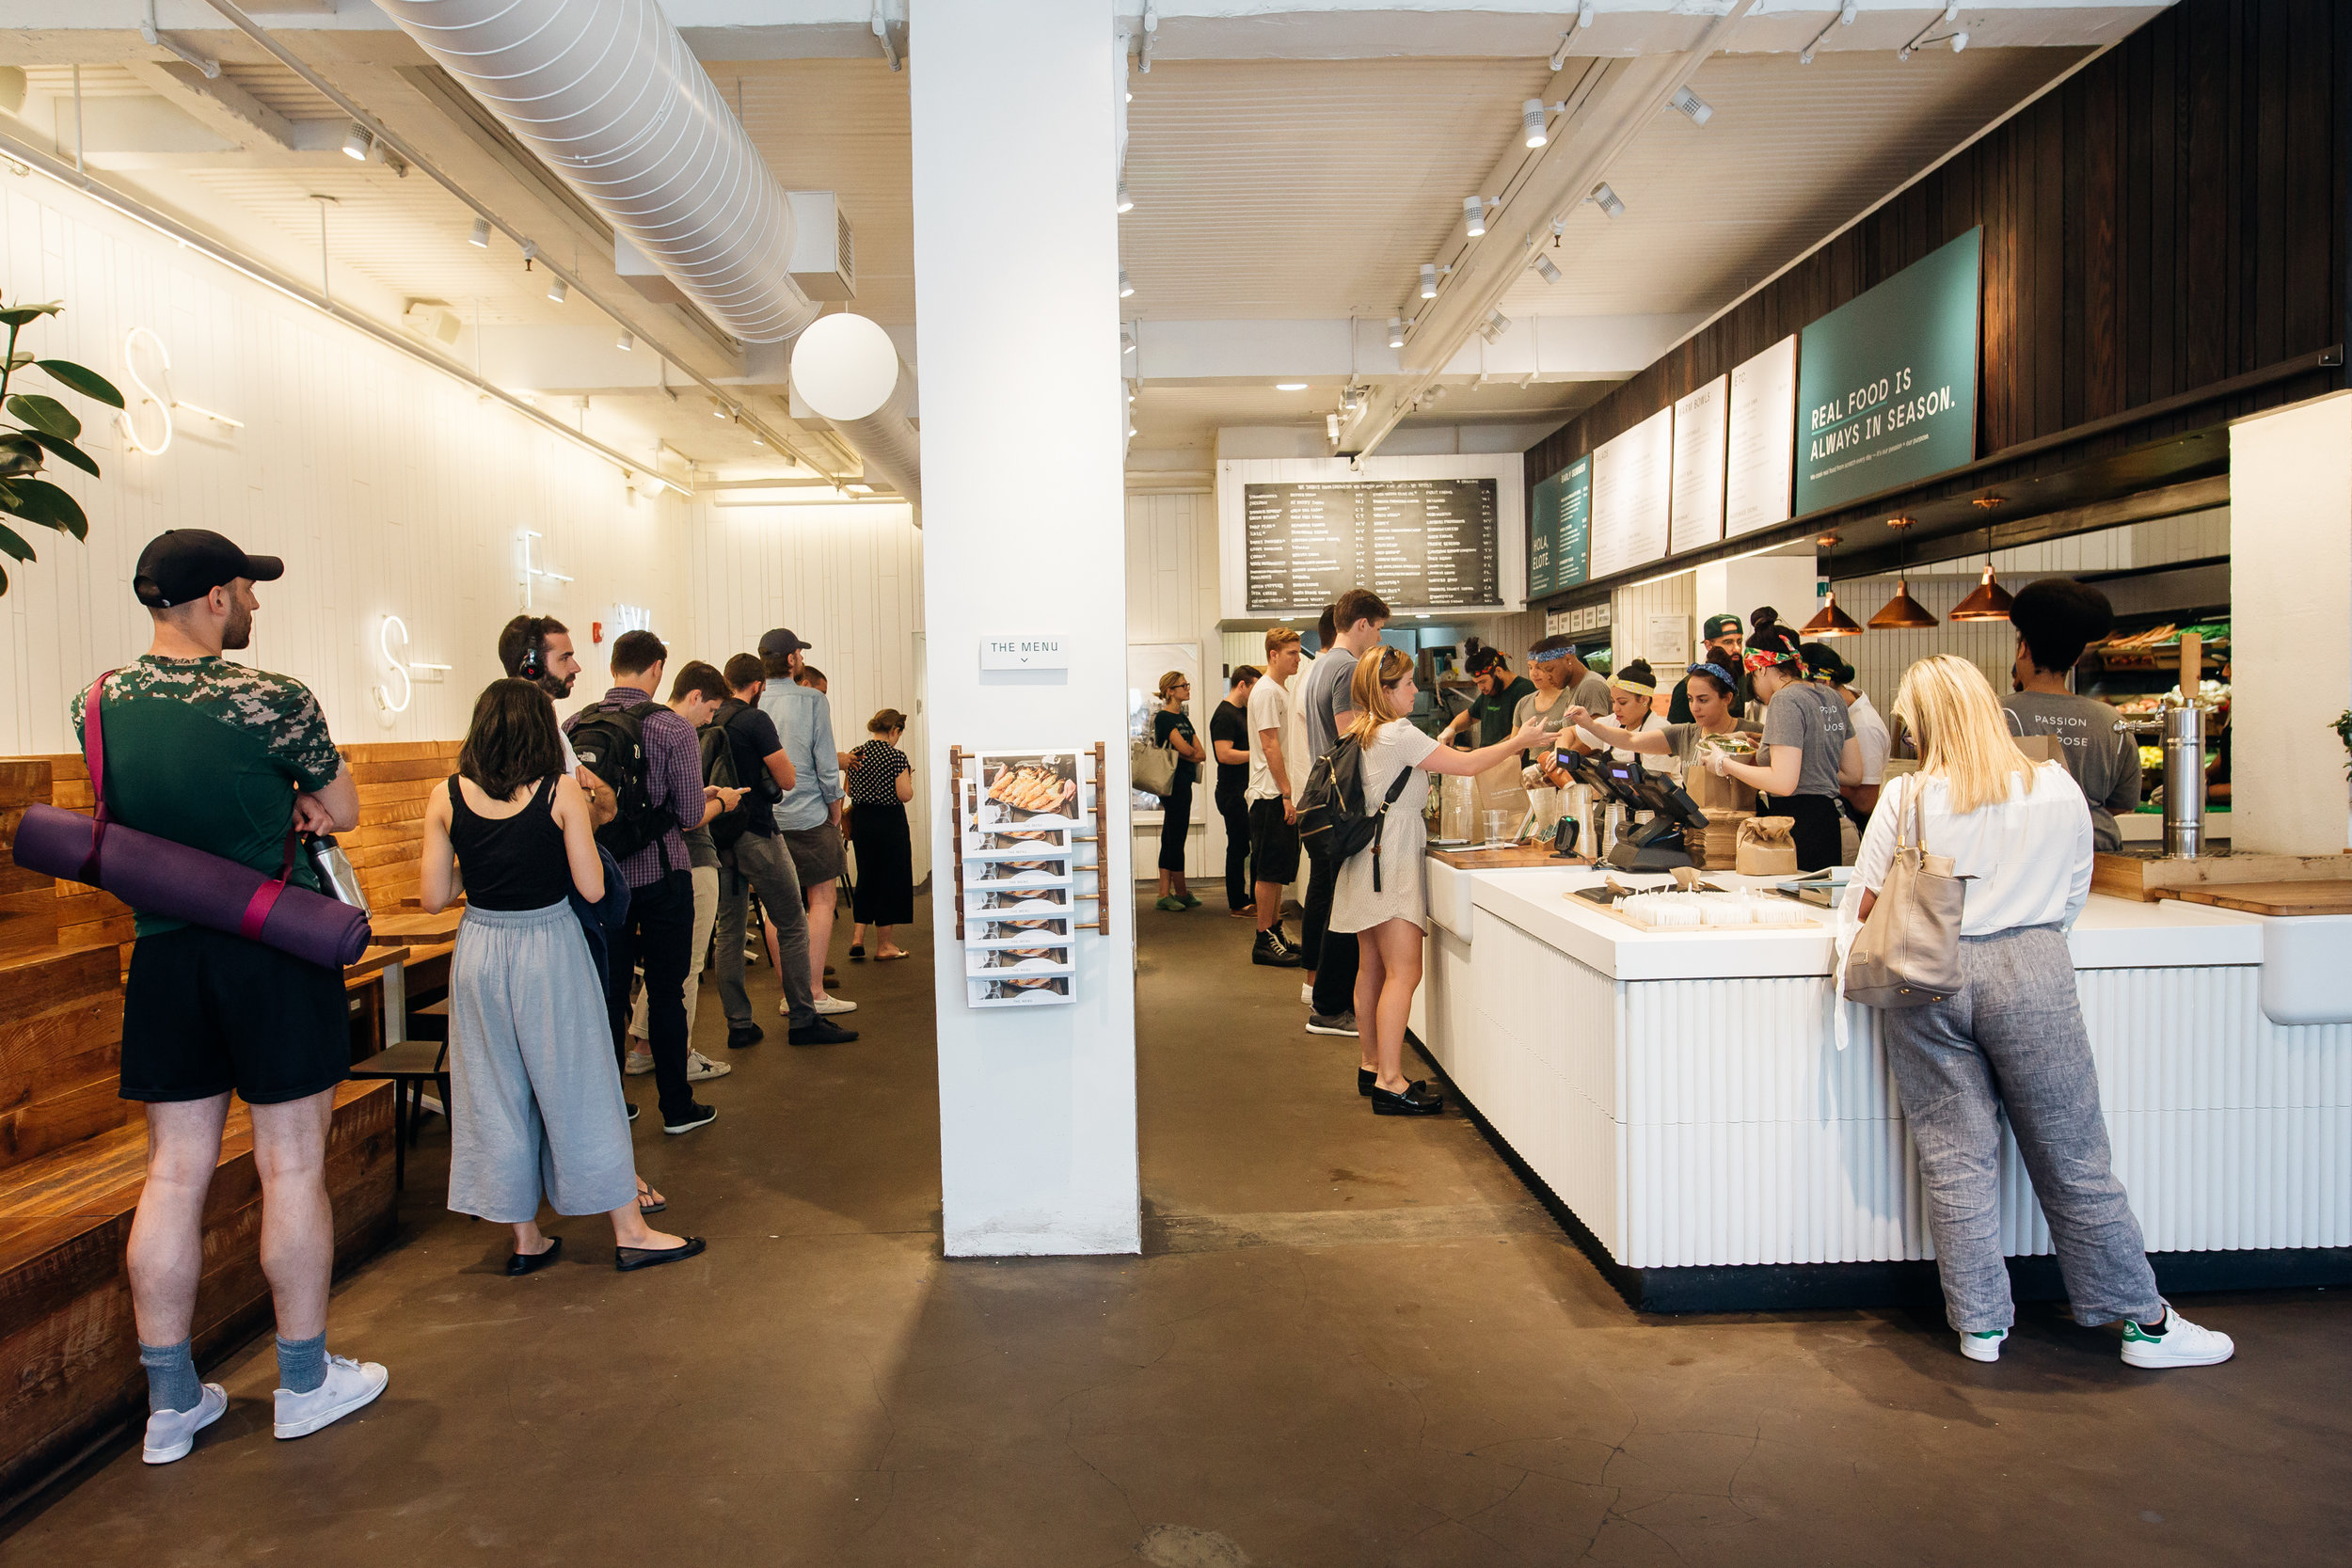 sweetgreen was first launched in Washington, D.C. where the three founders went to college before moving headquarters to Los Angeles, California.